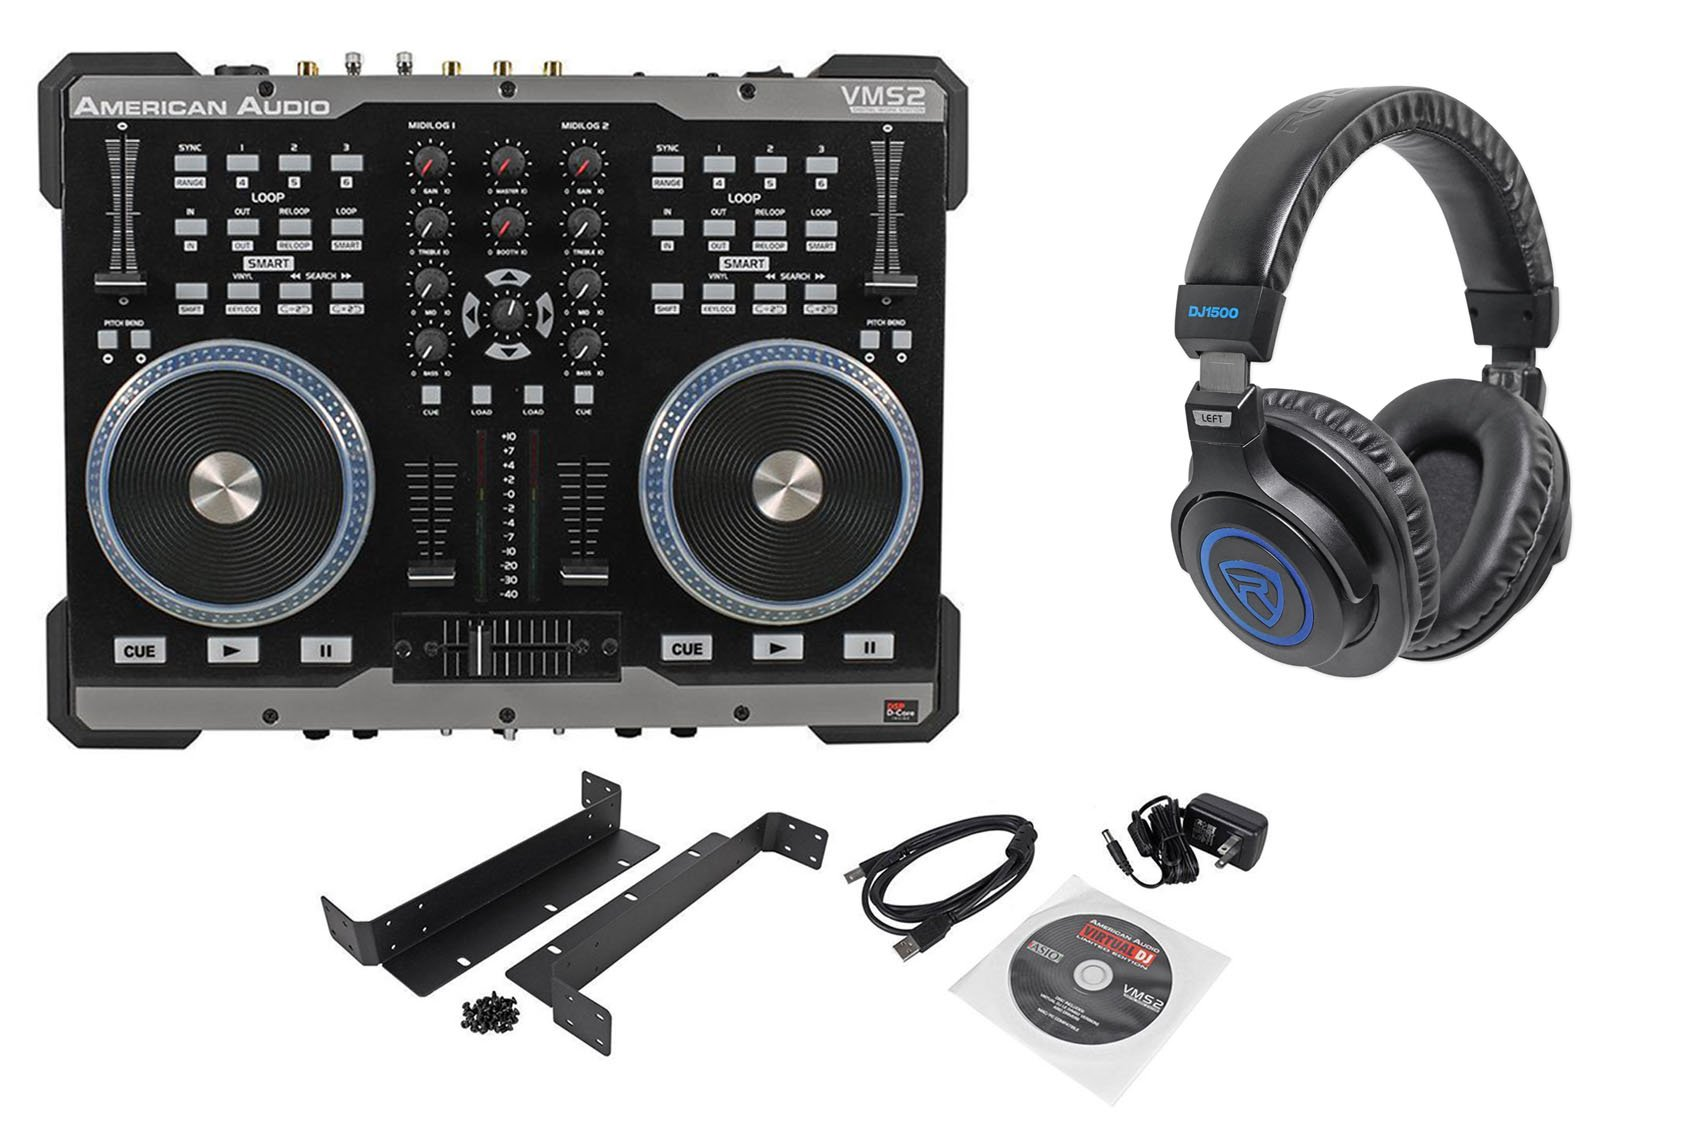 Package: American Audio VMS2 USB MIDI DJ Controller With Built-In Soundcard Touch Scratch Wheel Virtual DJ LE software + American Audio HP550 Lava Red/Black Over-the-Ear High-Powered DJ Headphones by American